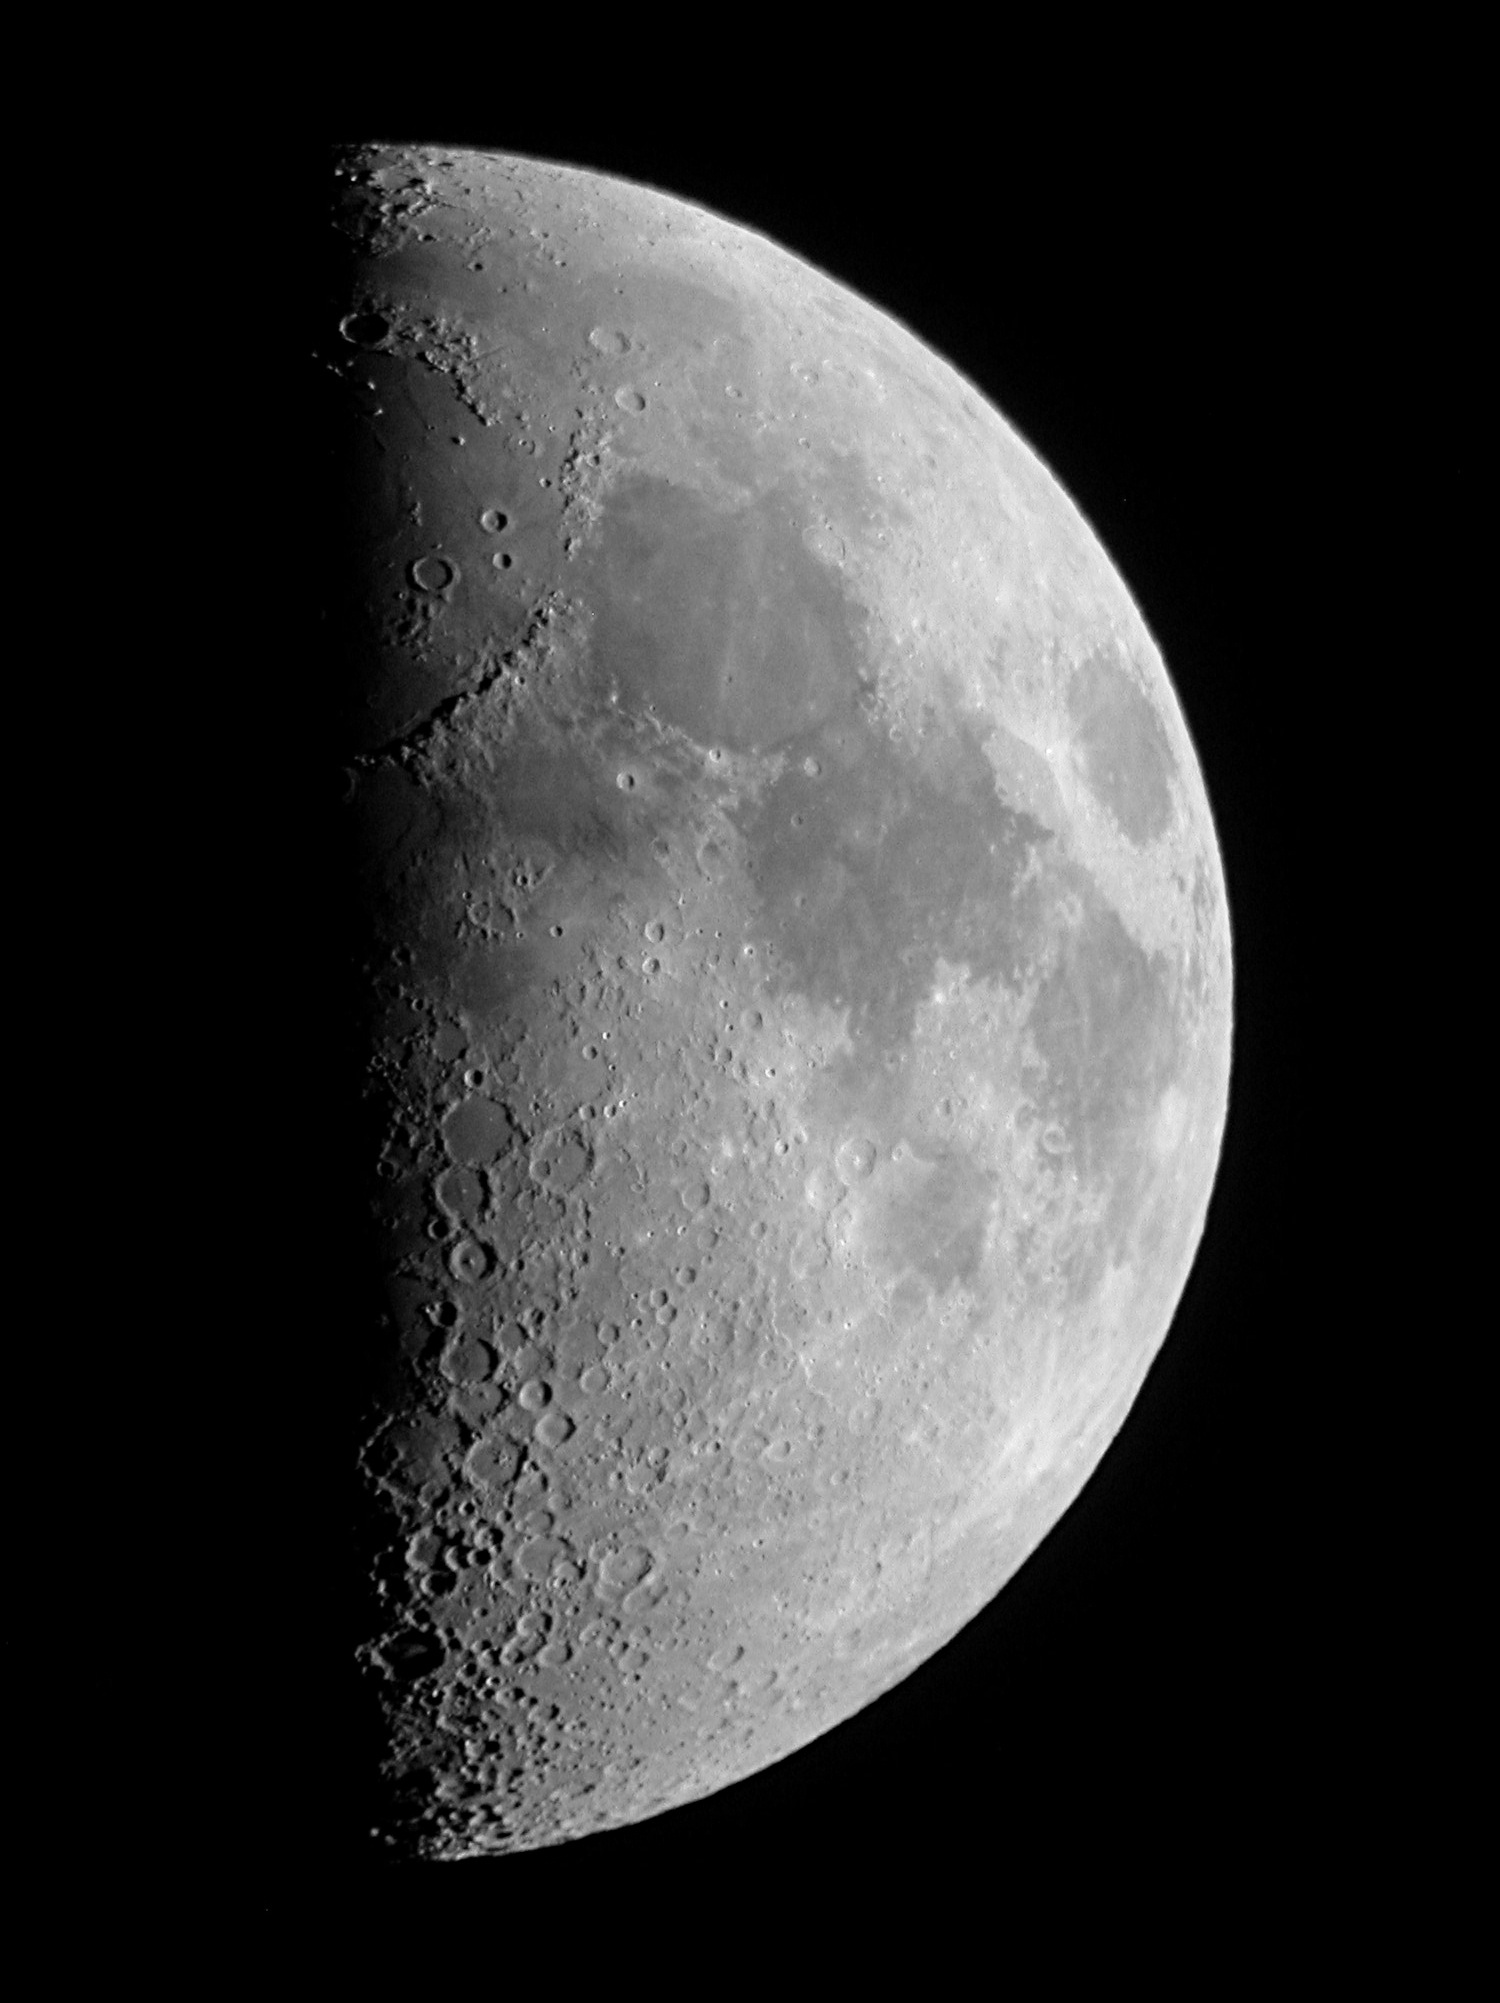 THE MOON will be in the First Quarter phase on August 10.